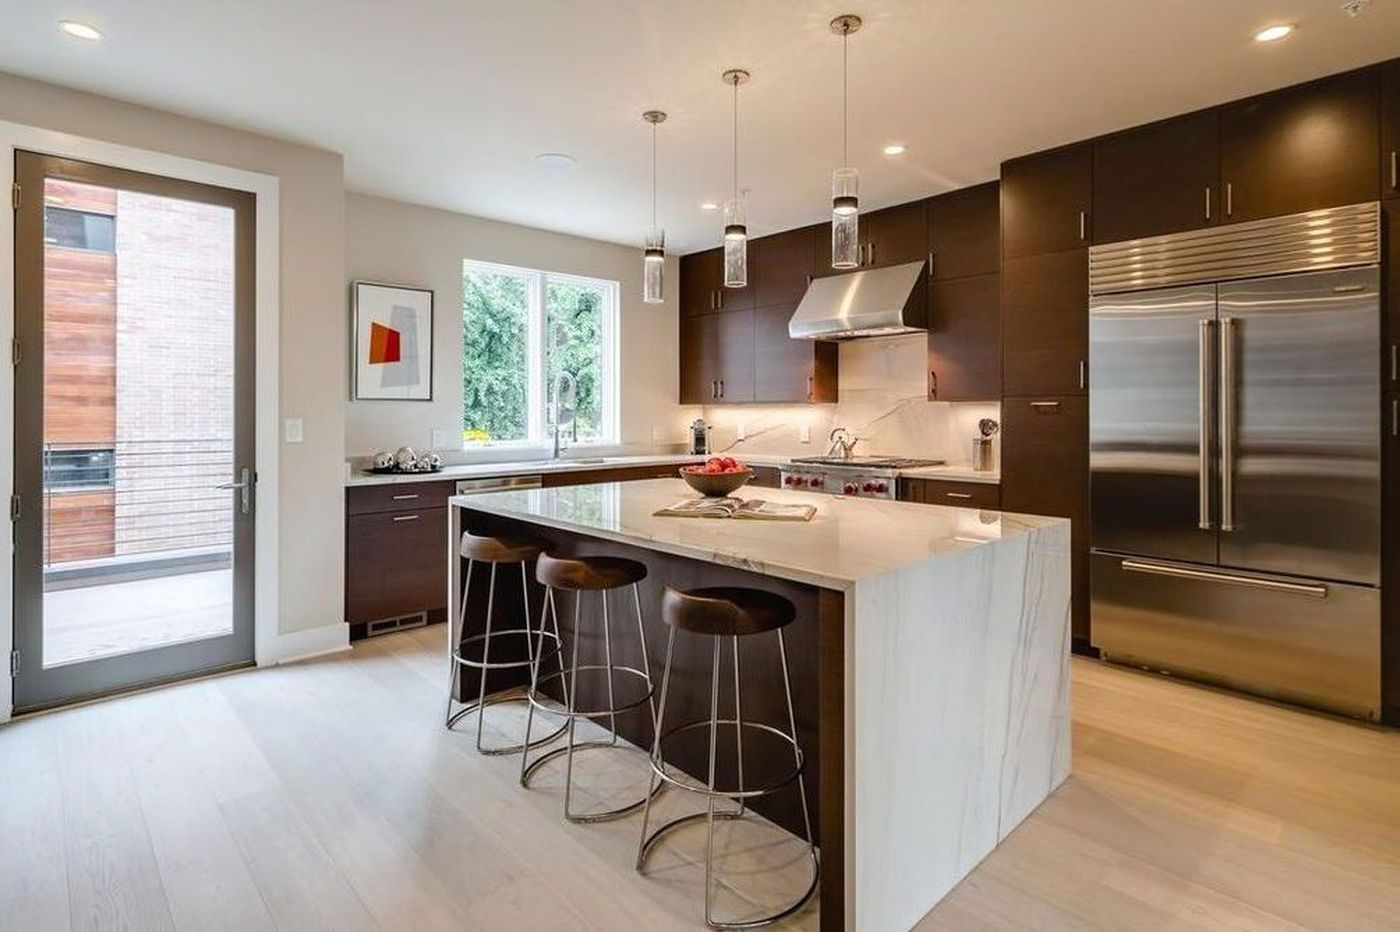 Philadelphia's most expensive rentals: What you can get for $15,000 a month